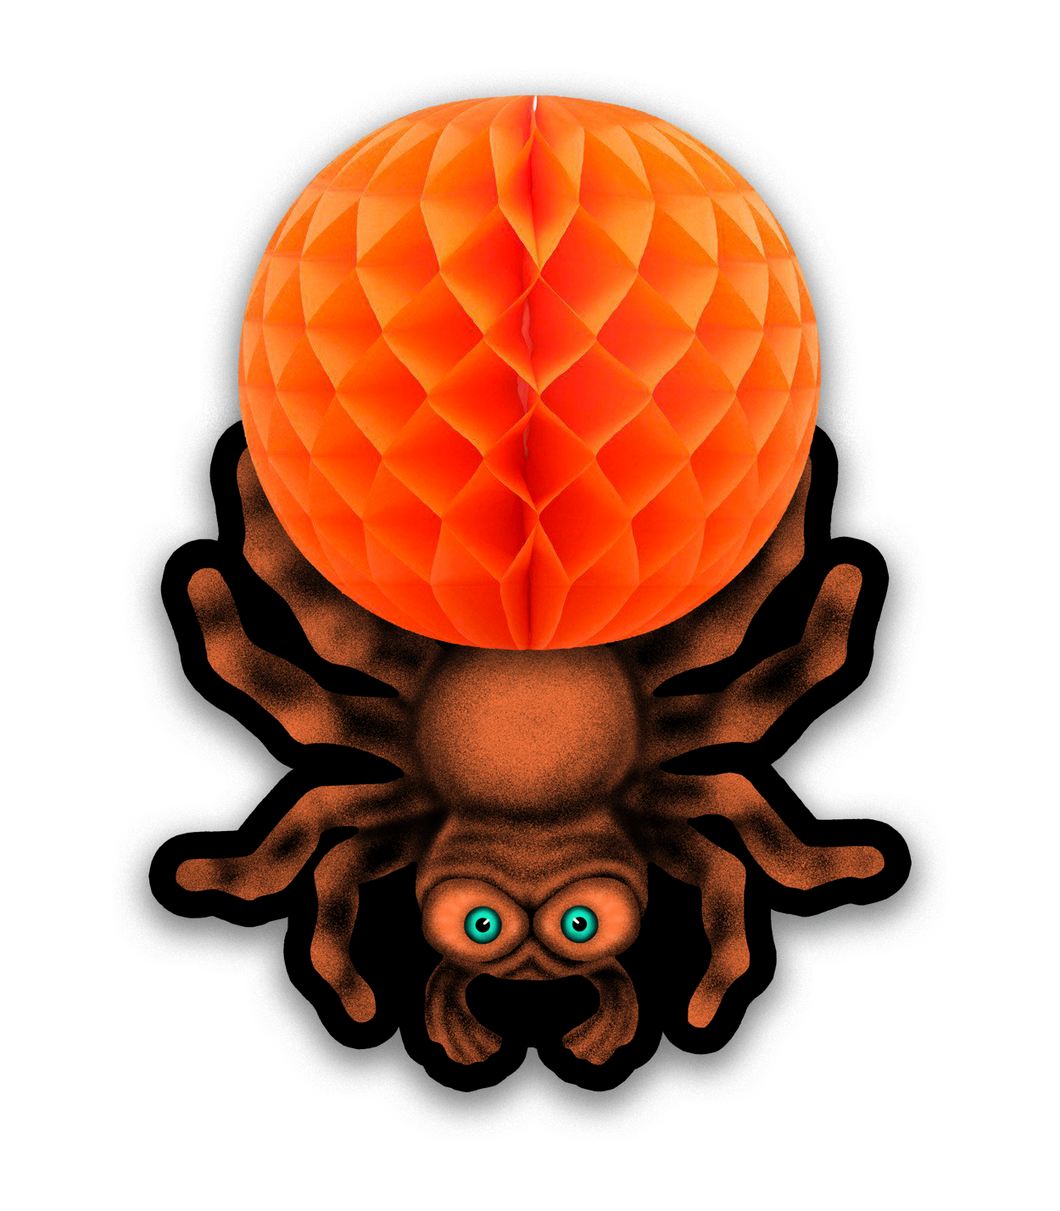 Retro Inspired Hanging Honeycomb Tissue Halloween Spider Cutout Decoration